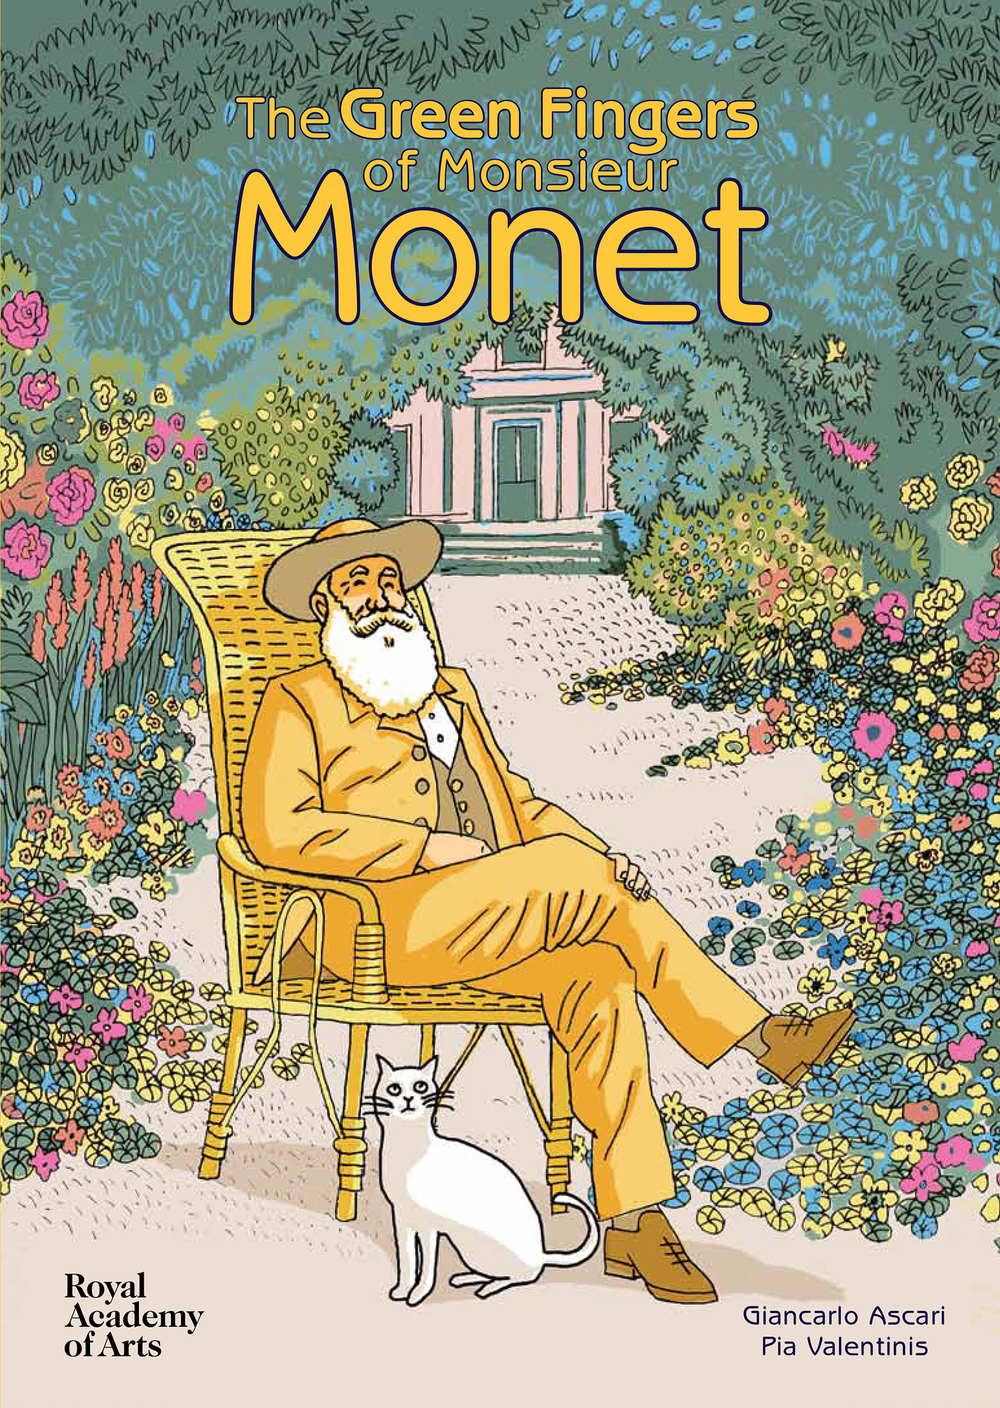 The Green Fingers Of Monsieur Monet by Giancarlo Ascari and Pia Valentinis. ( Royal Academy of Arts )   This delightful book is the perfect introduction to the work of Monsieur Monet. The first kids book published by the RA, it focuses on the Master of Impressionism's famous garden and is bursting with lovely rich  Tintin-esque  illustrations.  Get yours  here .